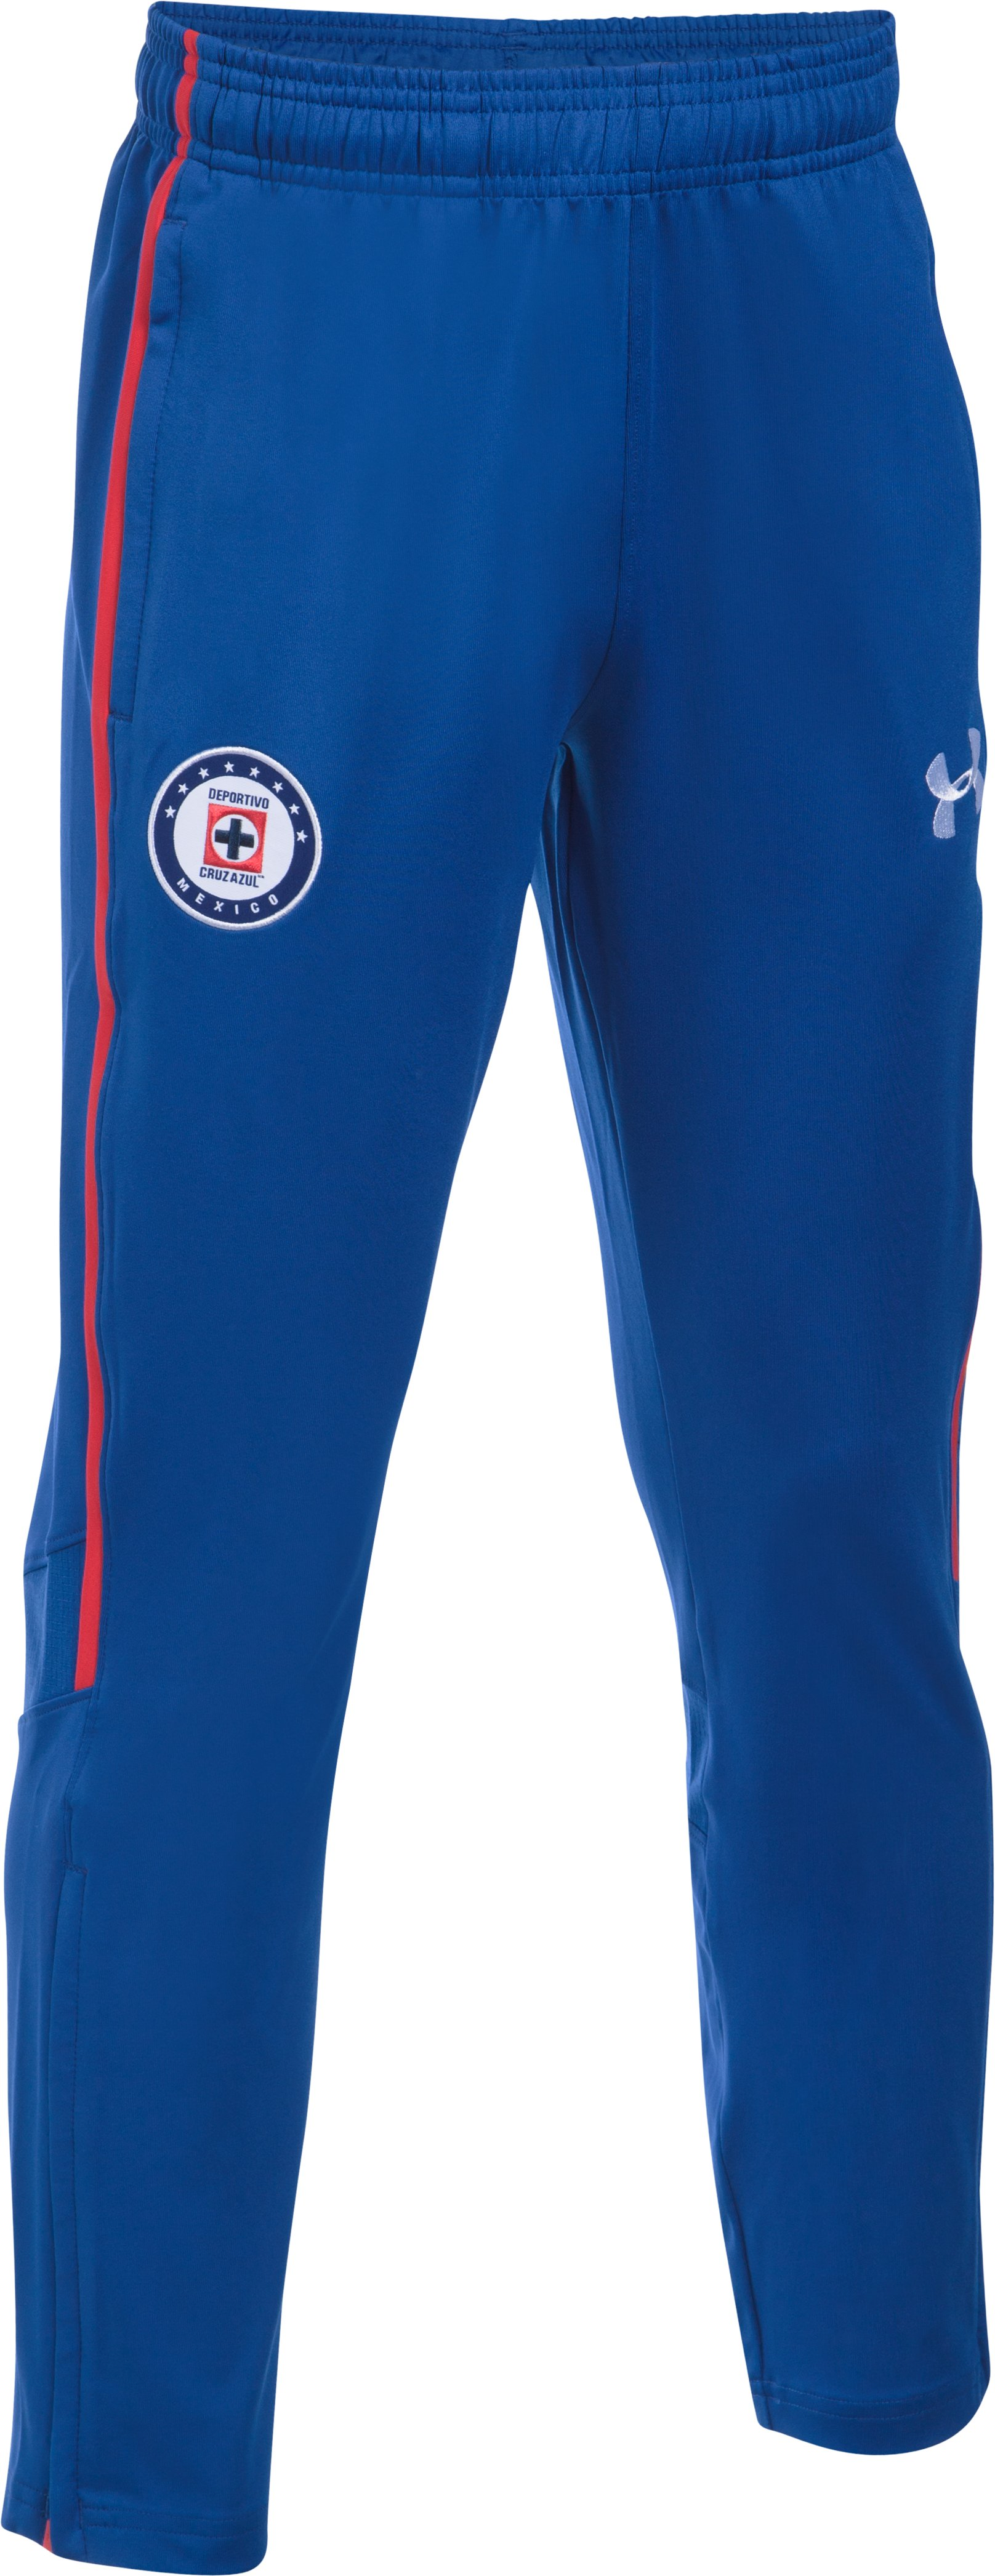 Kids' Cruz Azul Training Pants 1 Color $37.99